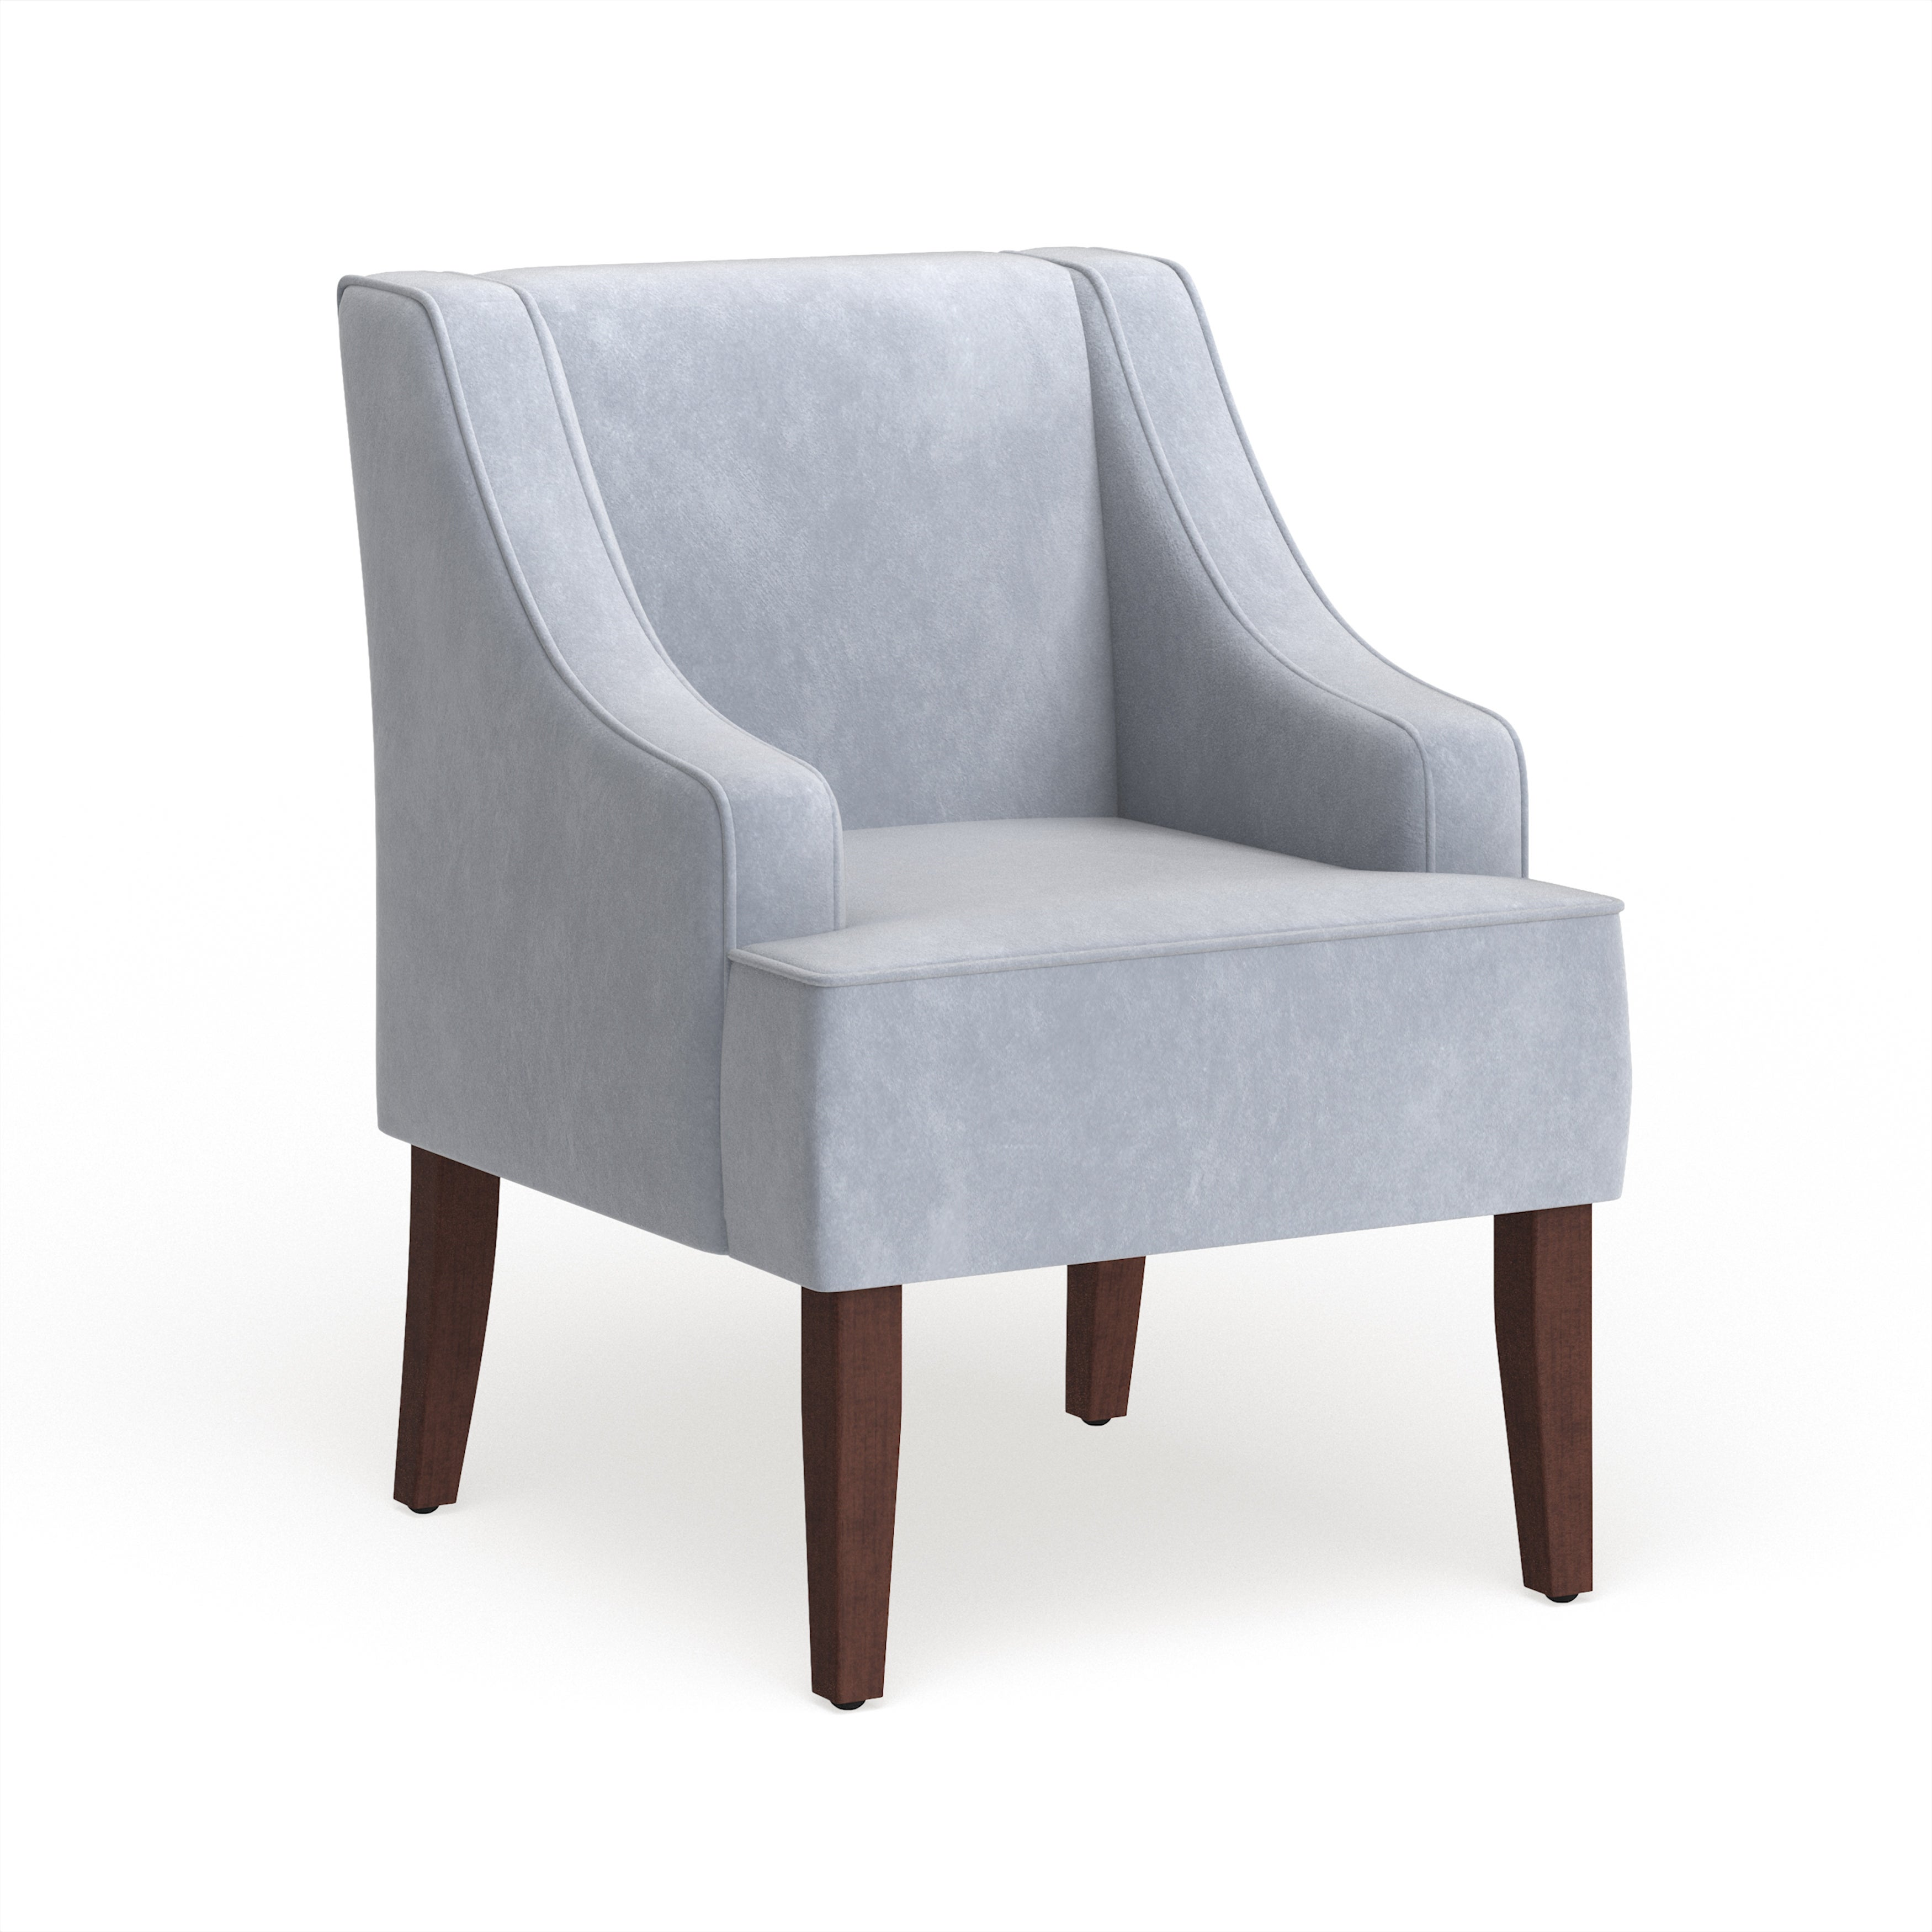 Shop Black Friday Deals On Porch Den Lyric Dove Grey Velvet Swoop Arm Accent Chair On Sale Overstock 22751185